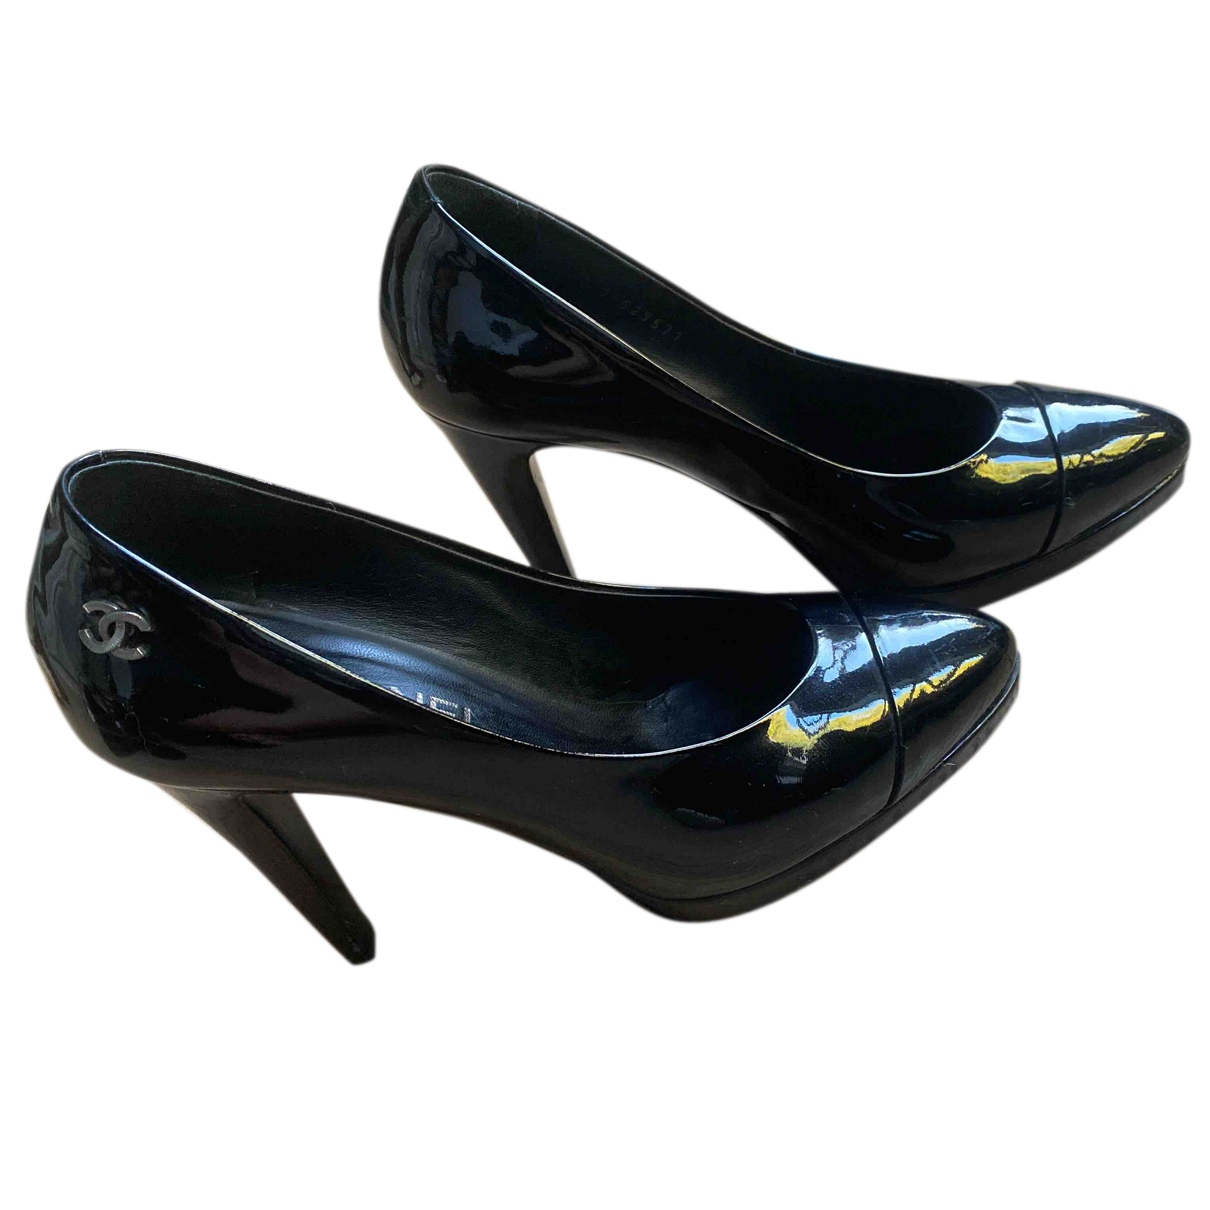 Chanel N Black Patent leather Heels for Women 38 EU